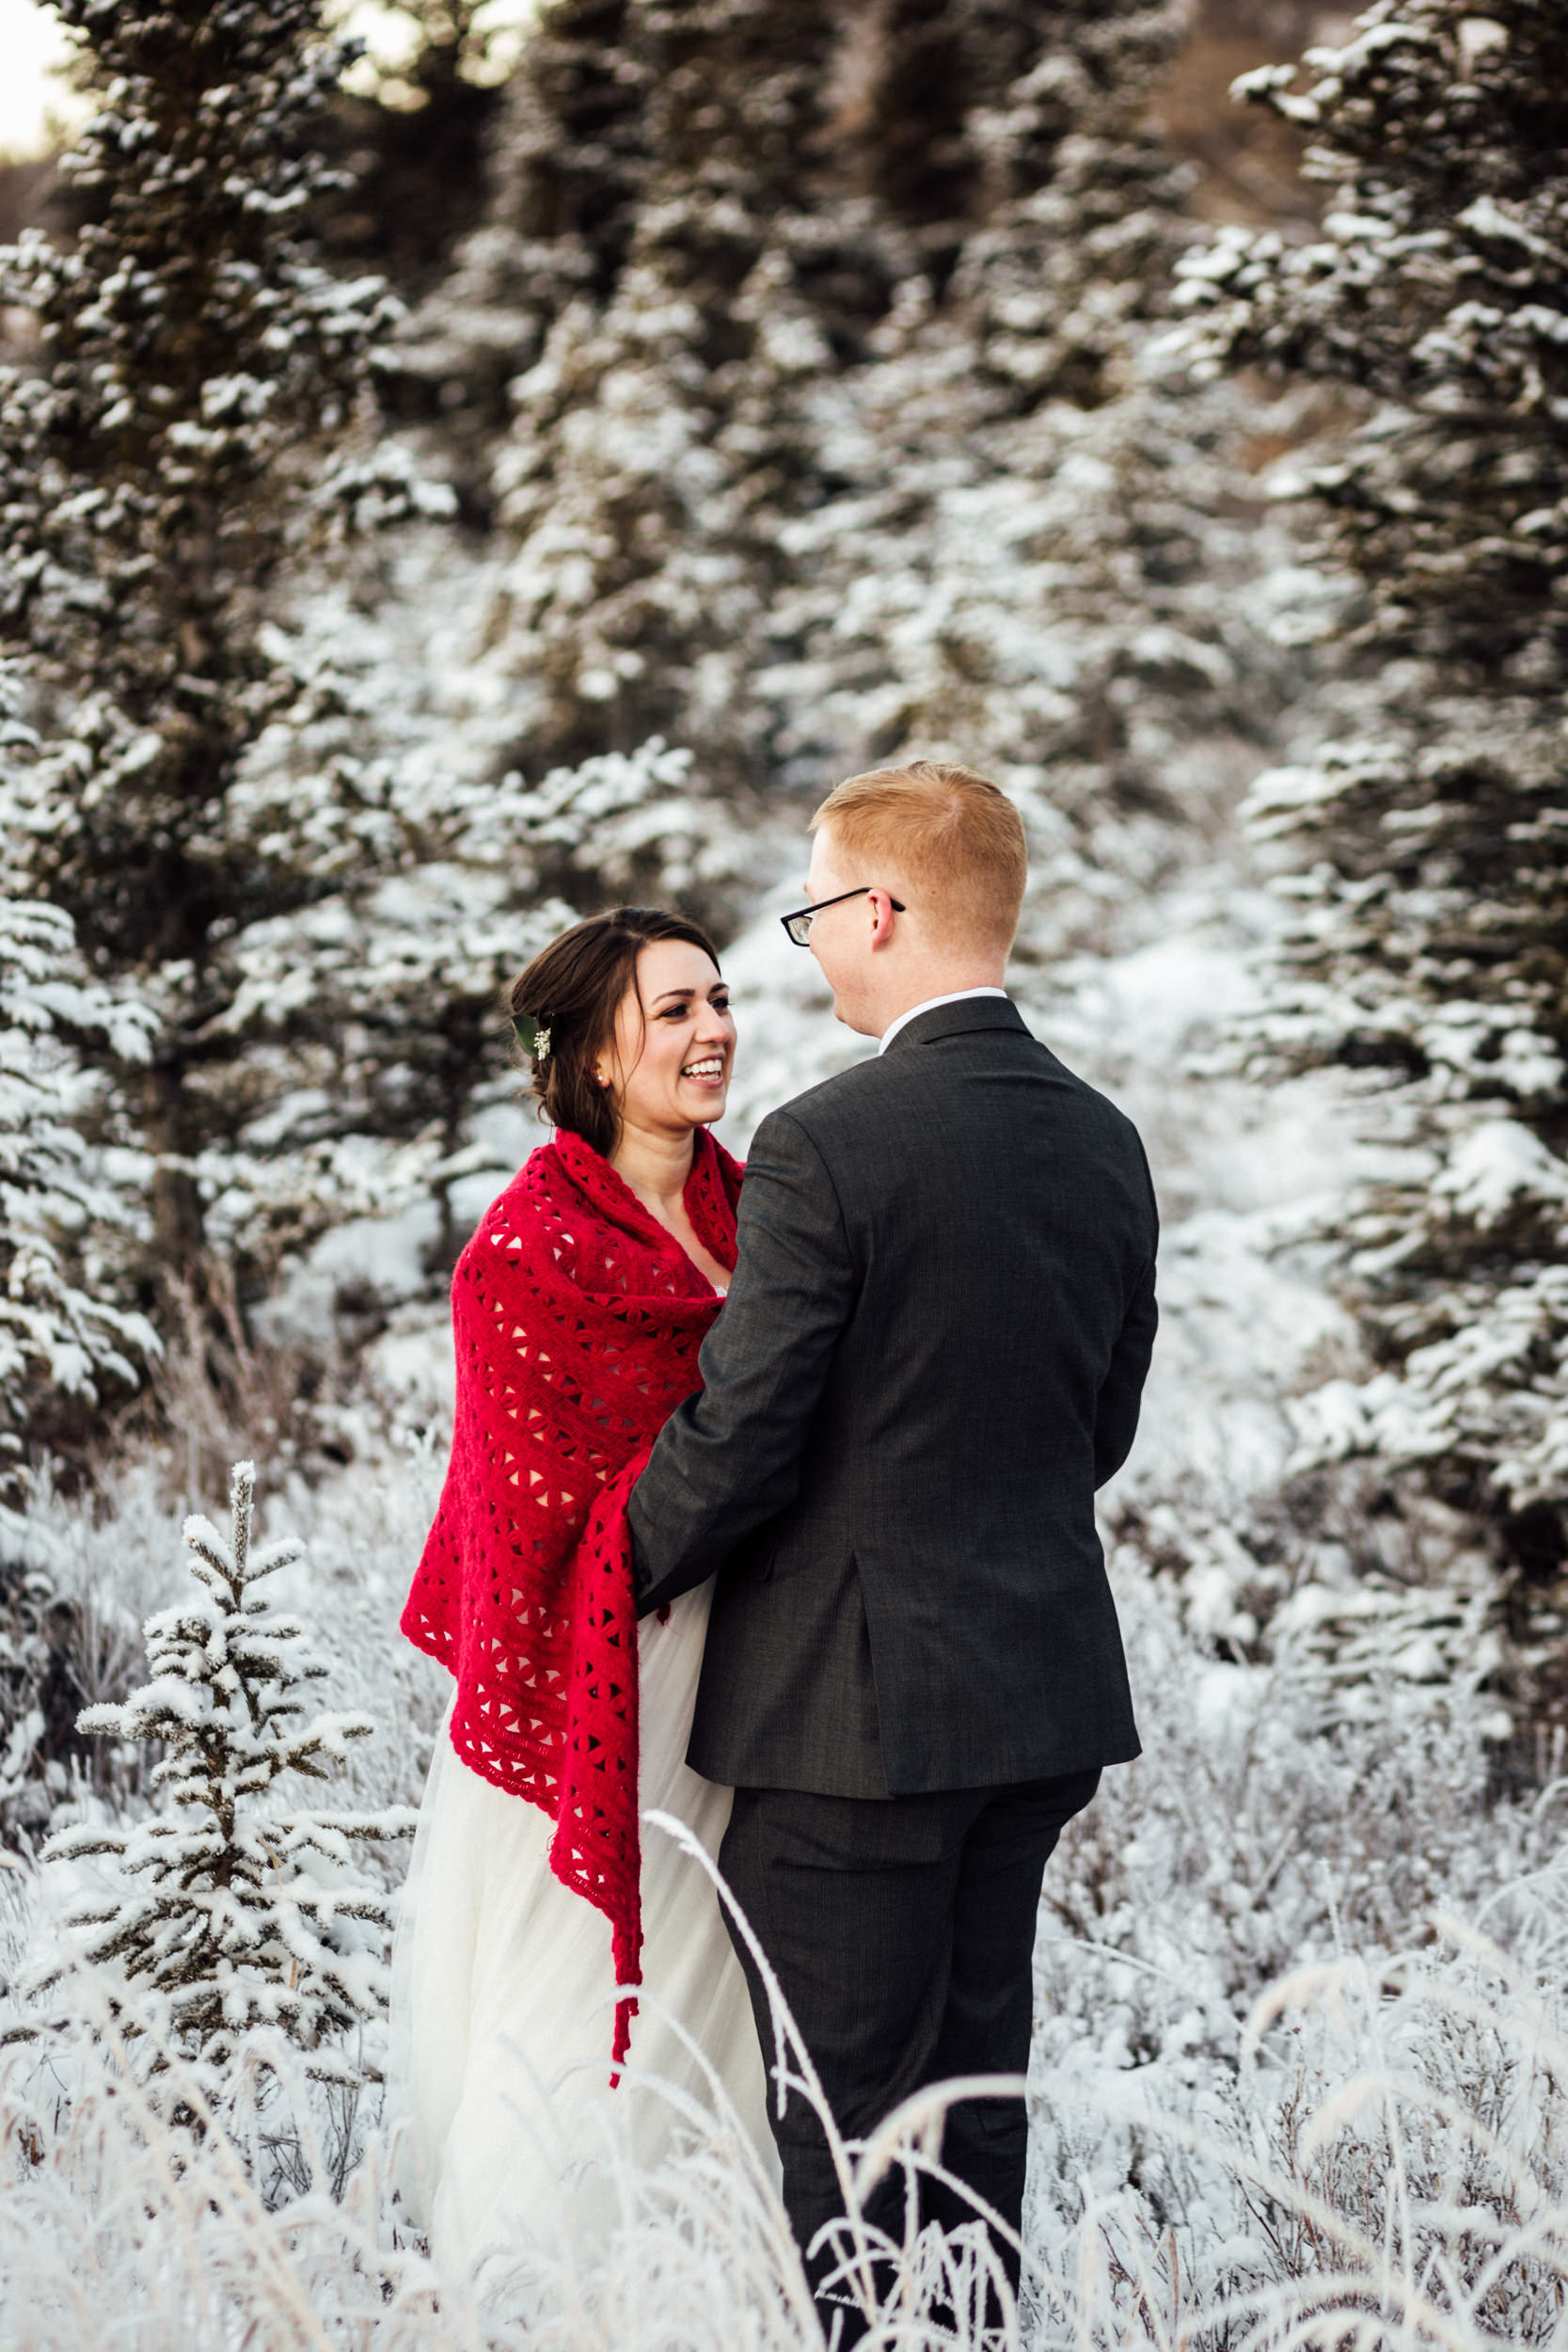 Couple smiling at one another among snowy trees